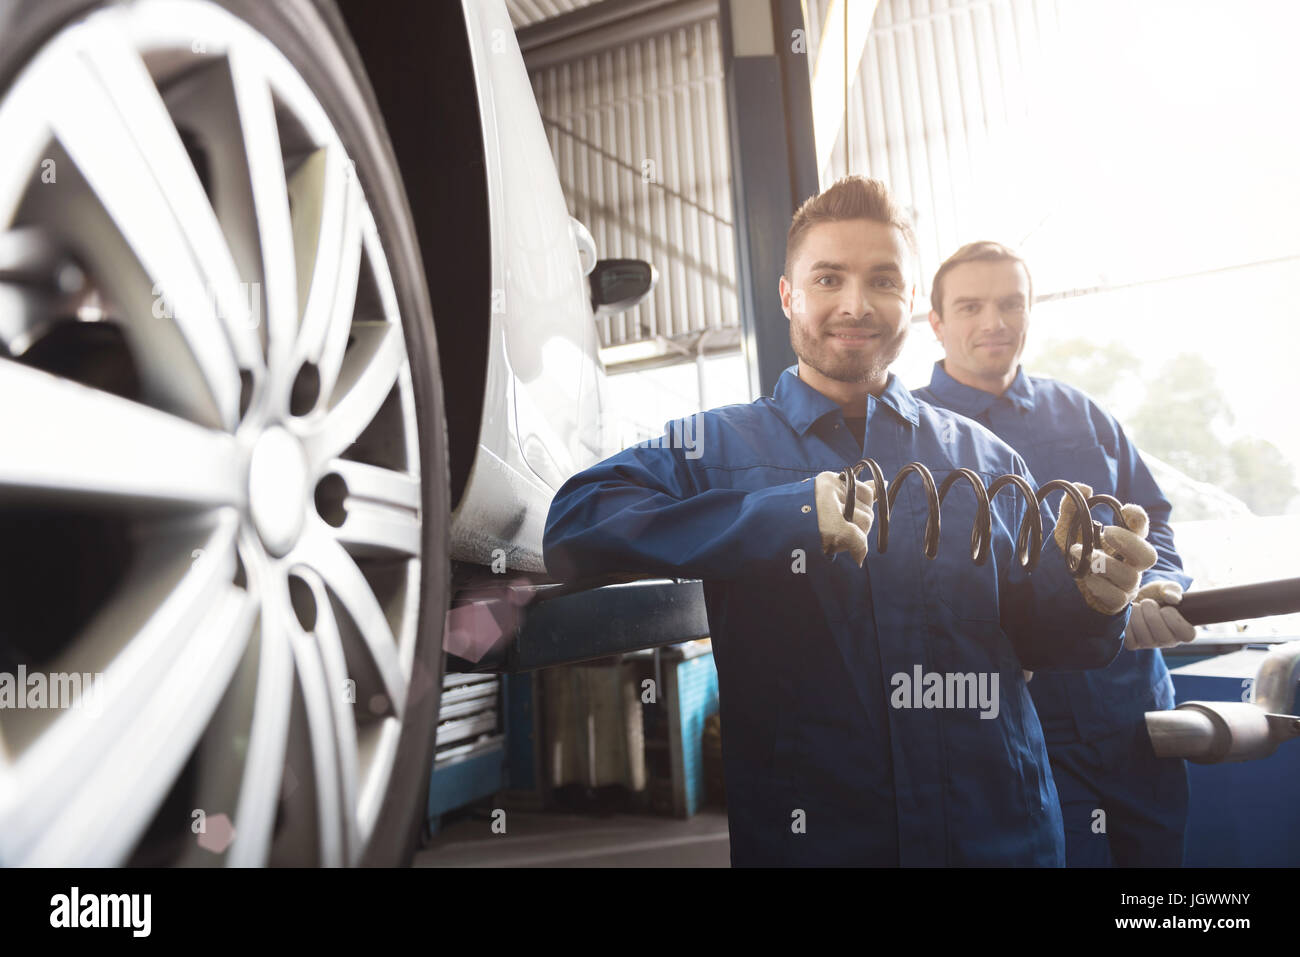 Qualified maintenance. Young pleasant trained mechanic holding a part he intending installing while his colleague - Stock Image